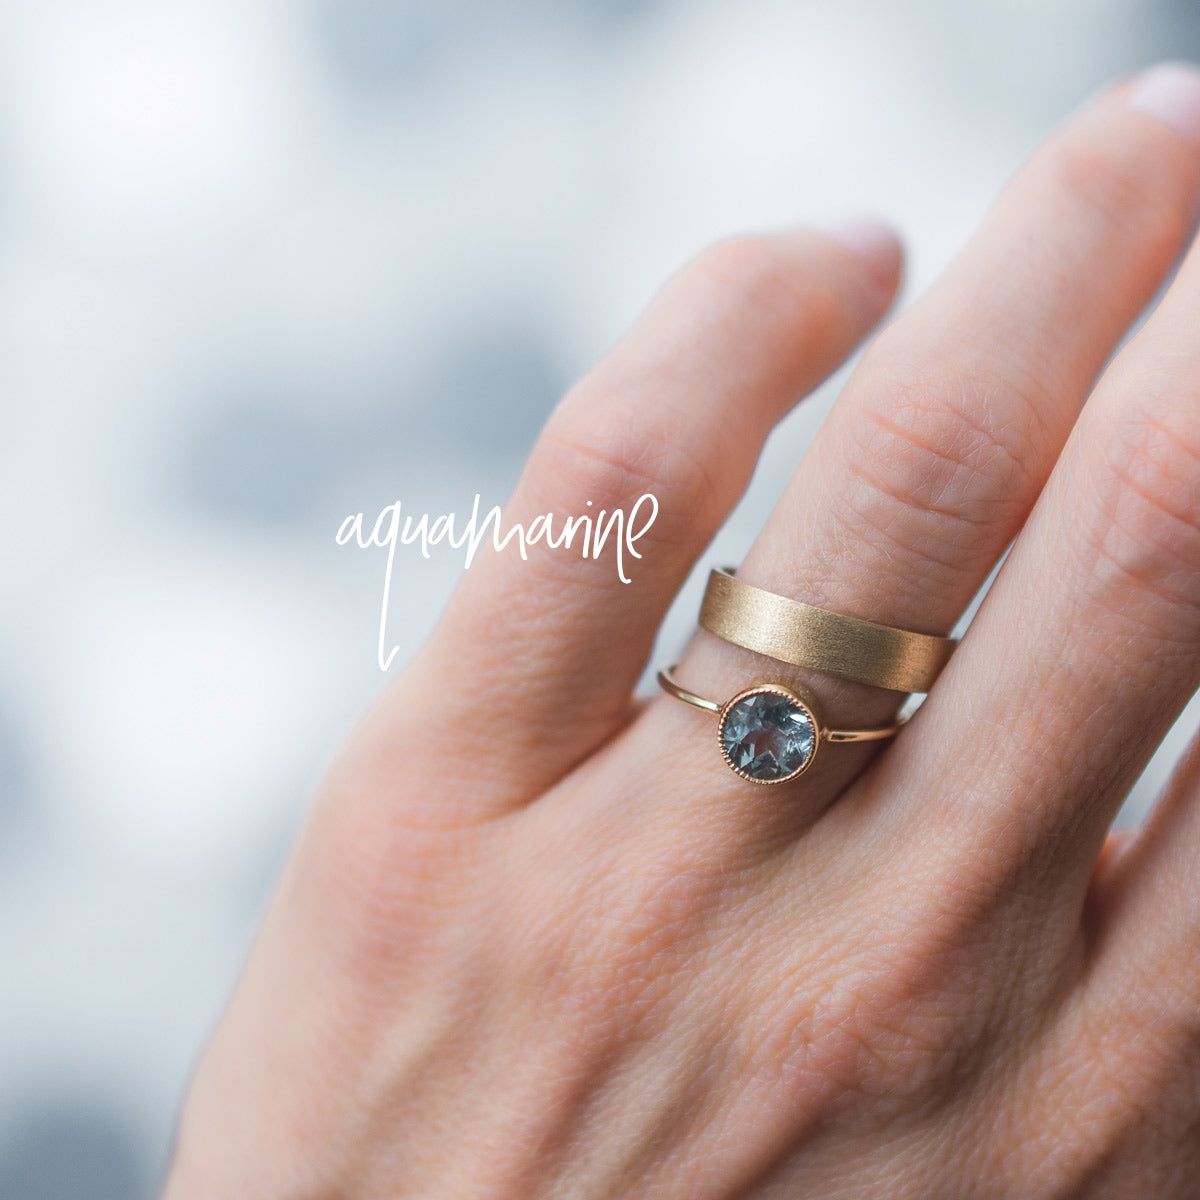 metal images on pinterest rings wedding non wooden engagement best